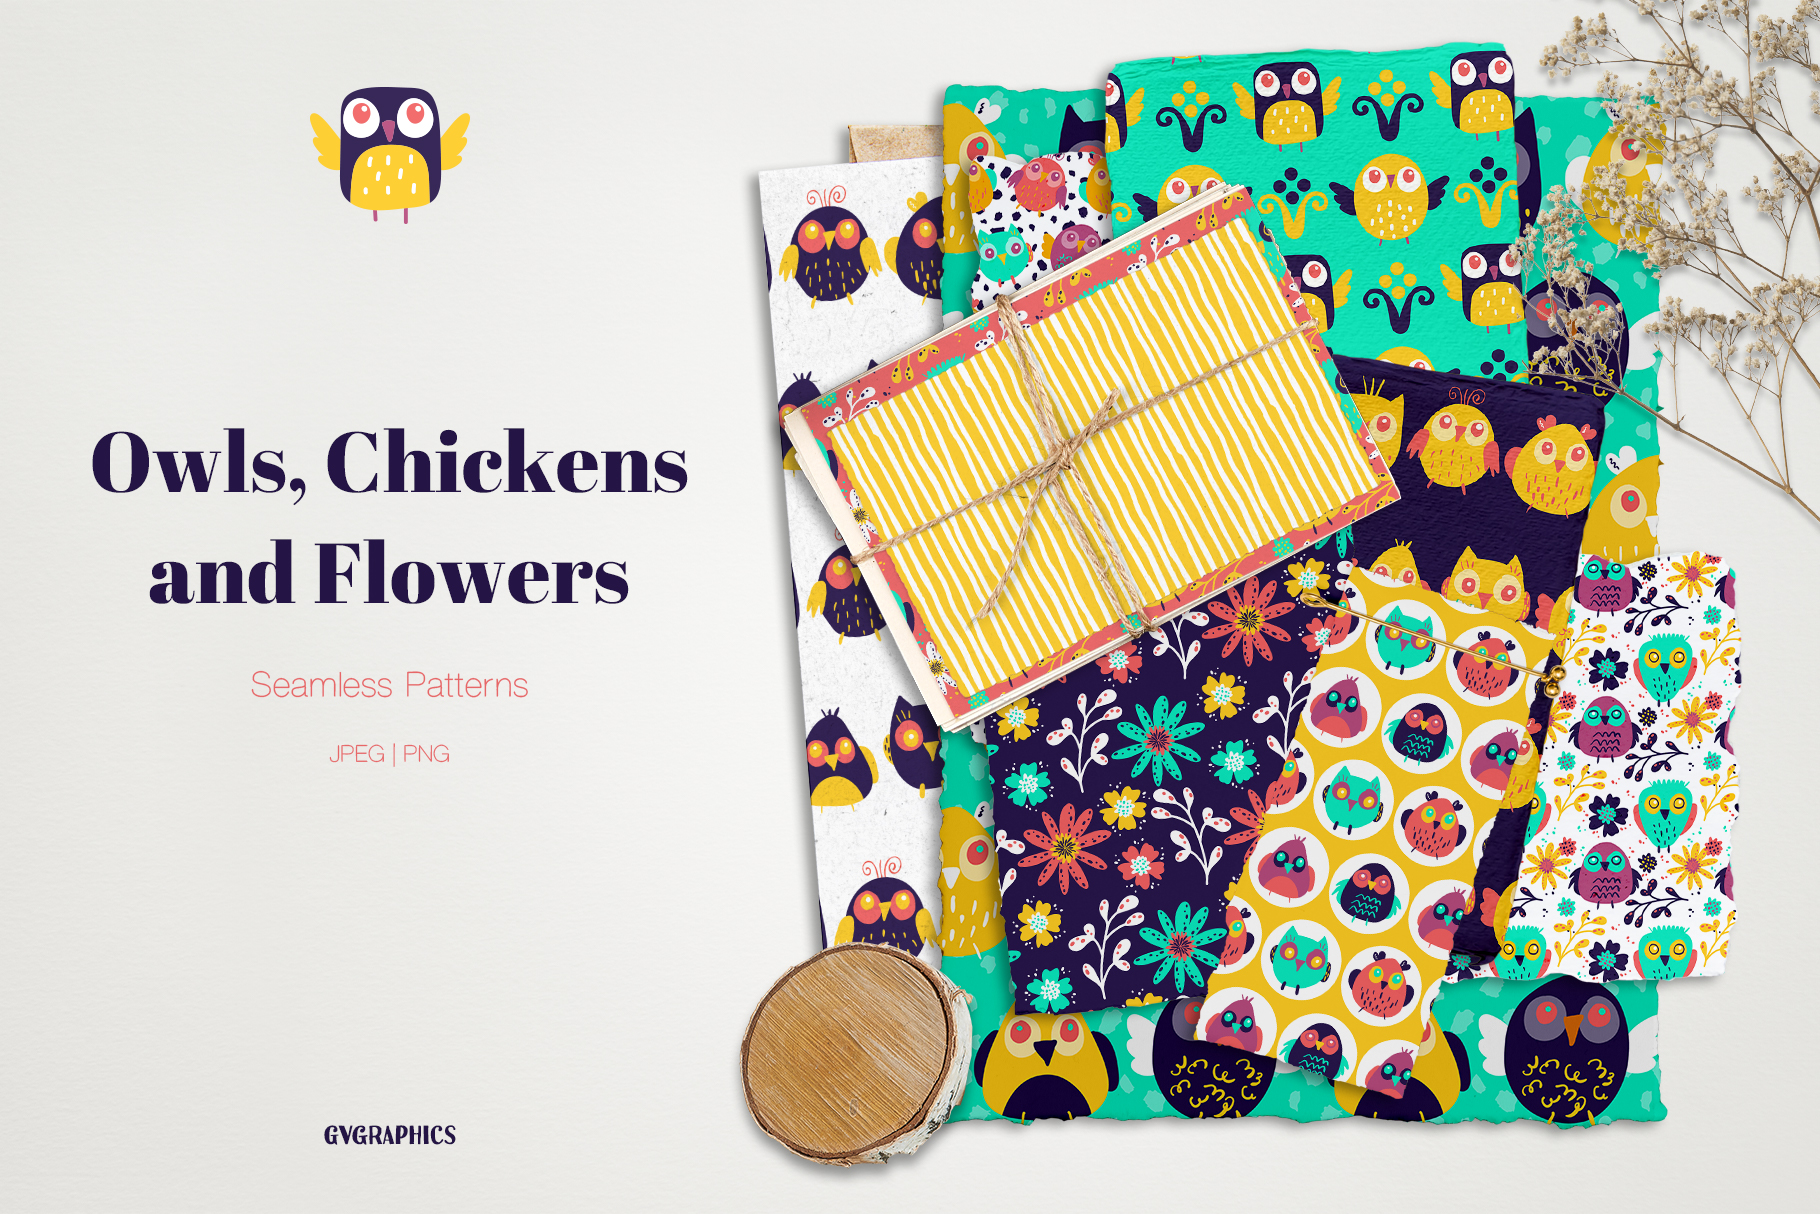 Seamless Patterns with Owls Chikend and Flowers.